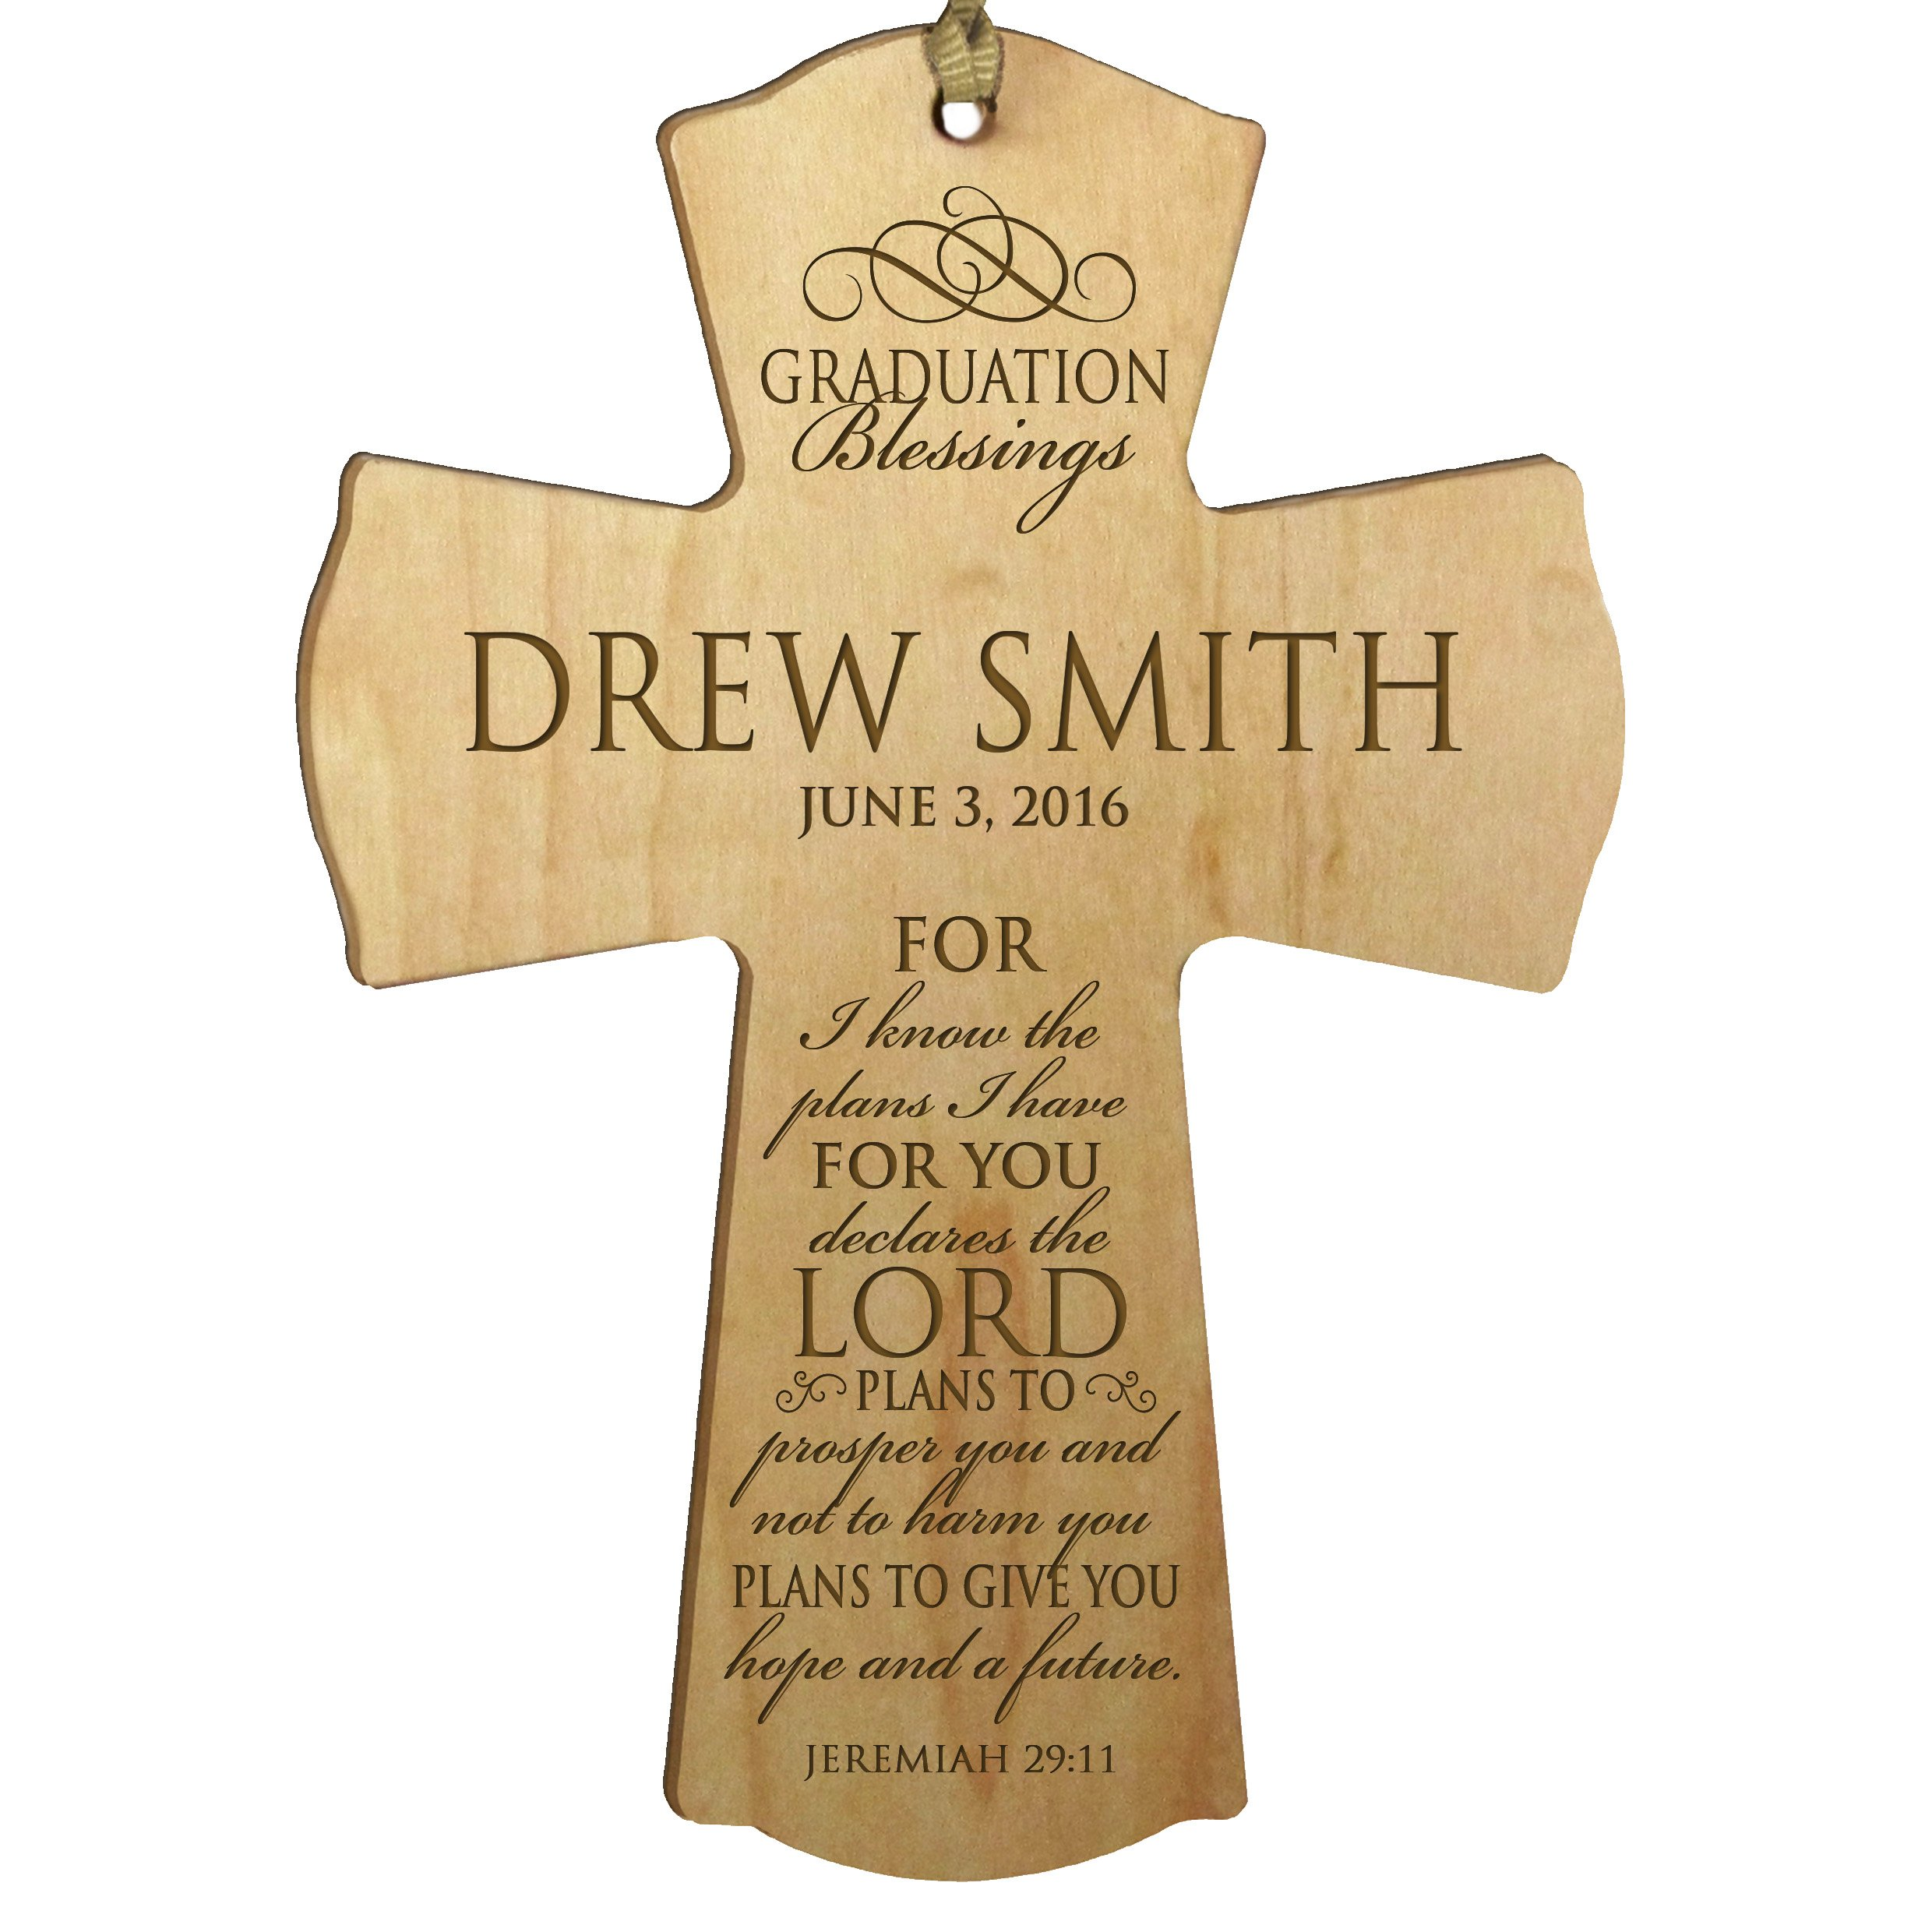 LifeSong Milestones Personalized Graduation gifts for graduate ideas for men and women custom Wall Cross For I know the plans I have FOR YOU declares the Lord Jeremiah 29:11 (4.5'' x 6'', Maple)